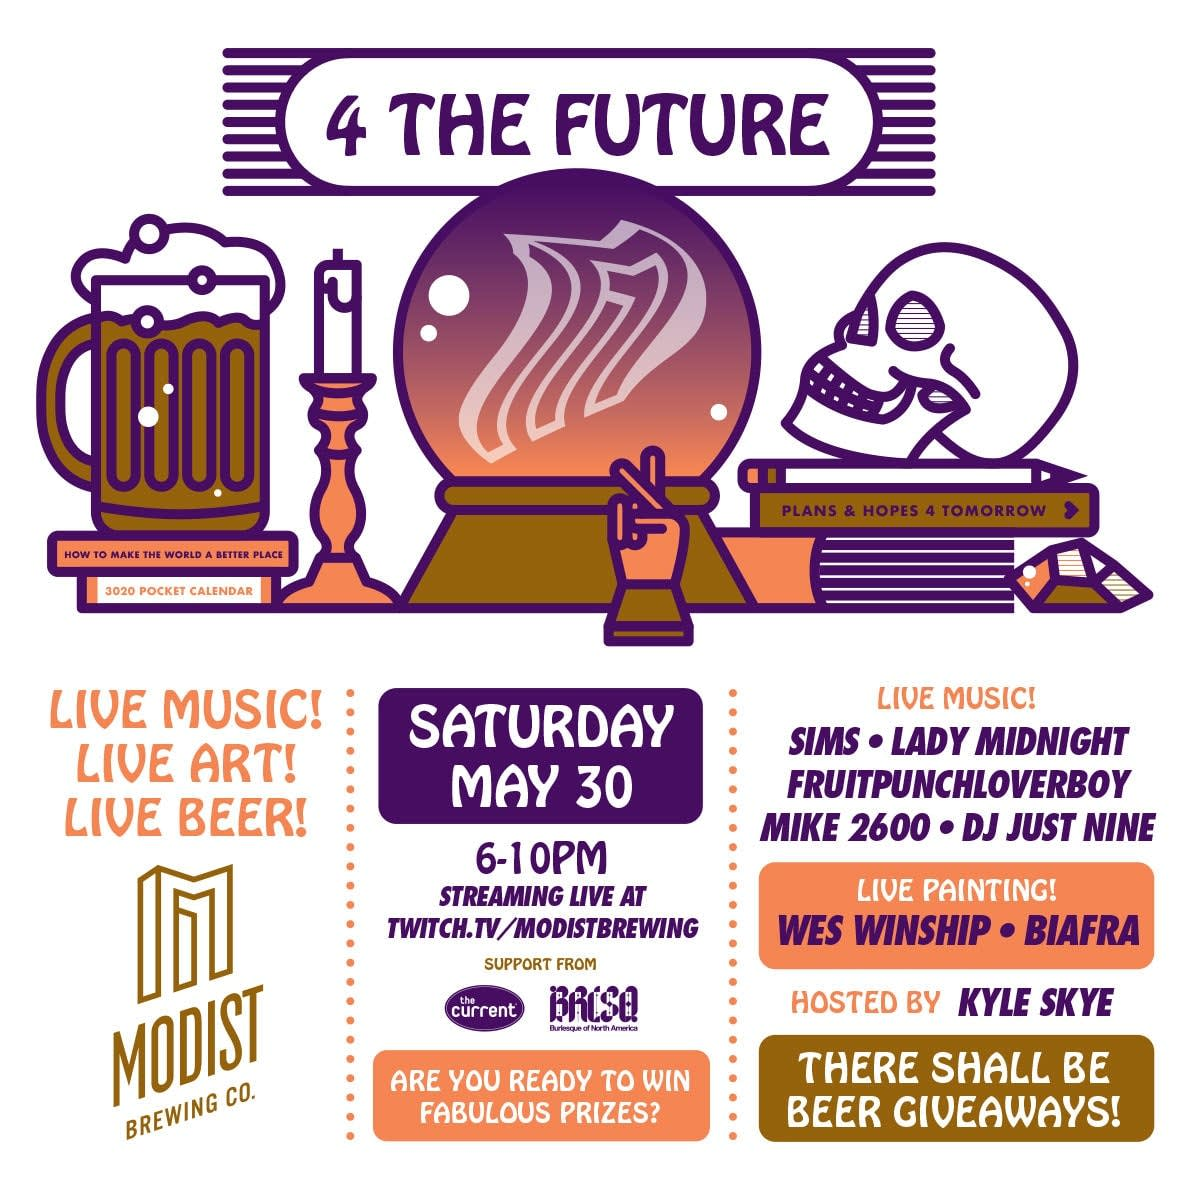 Modist Brewing Company 4 the Future Livestream Event